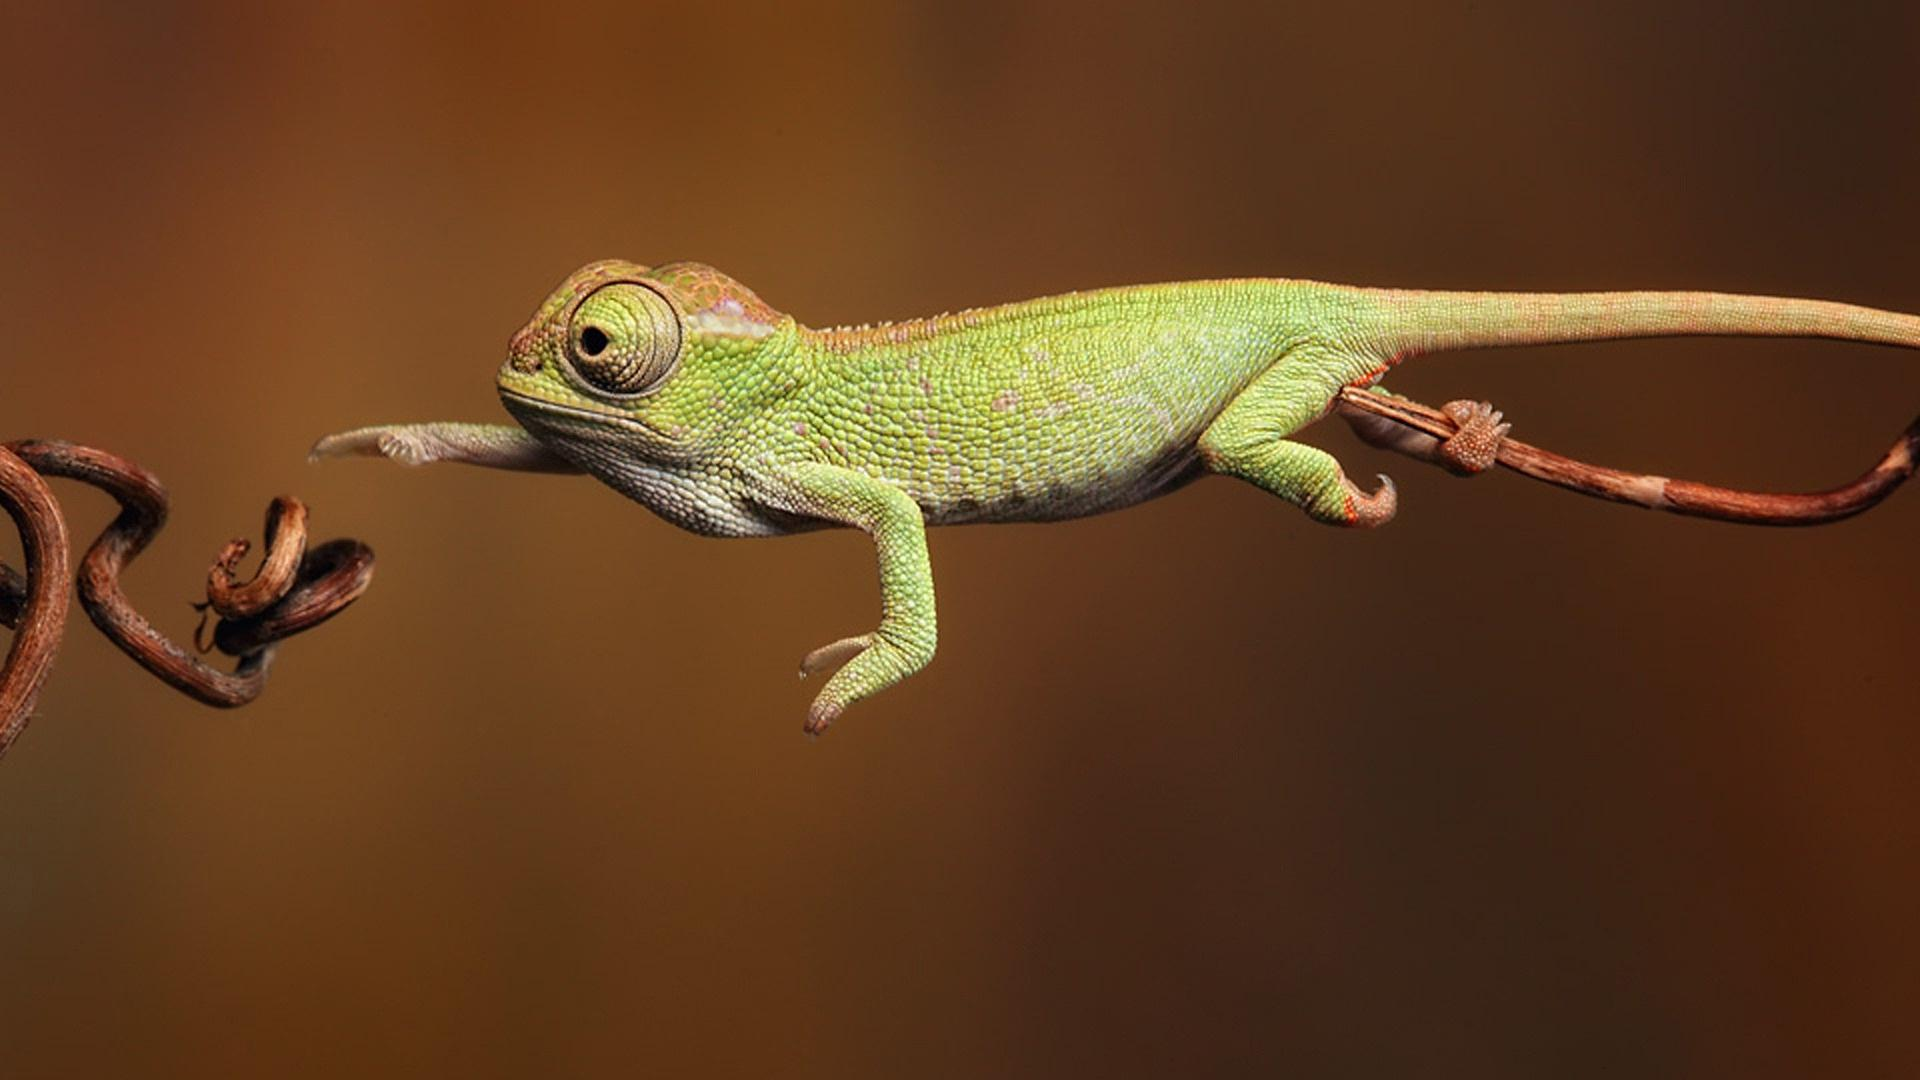 Chameleon Wallpapers HD Backgrounds, Image, Pics, Photos Free